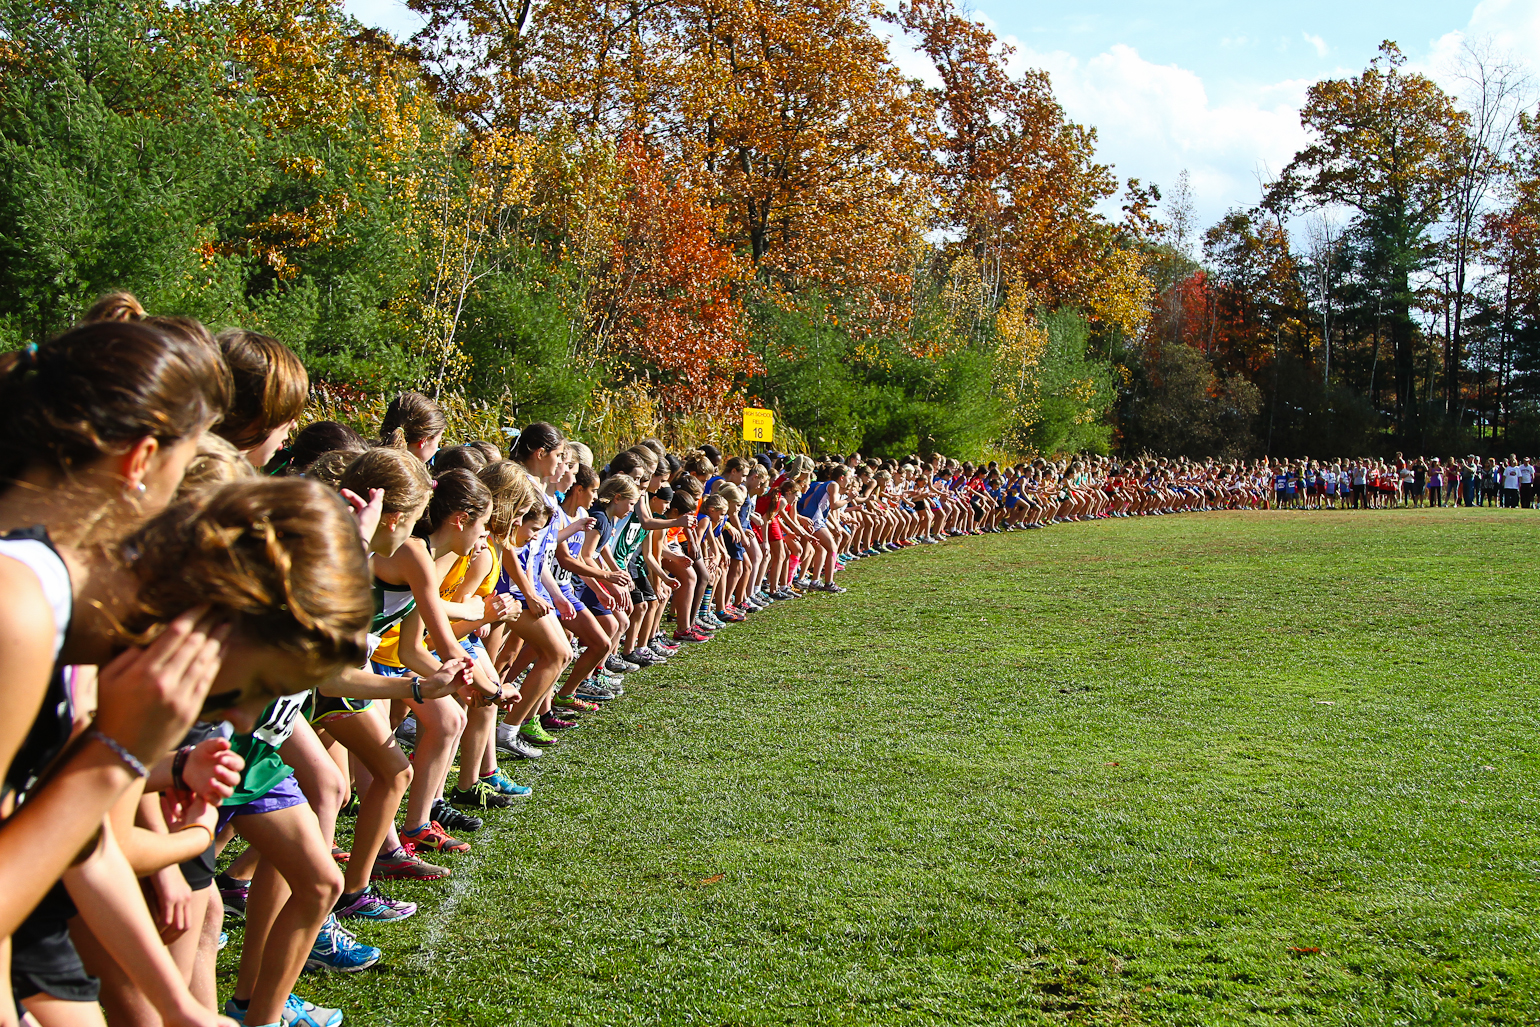 Cross country running photos Affordable Home UV psoriasis light treatment. Phototherapy Experts